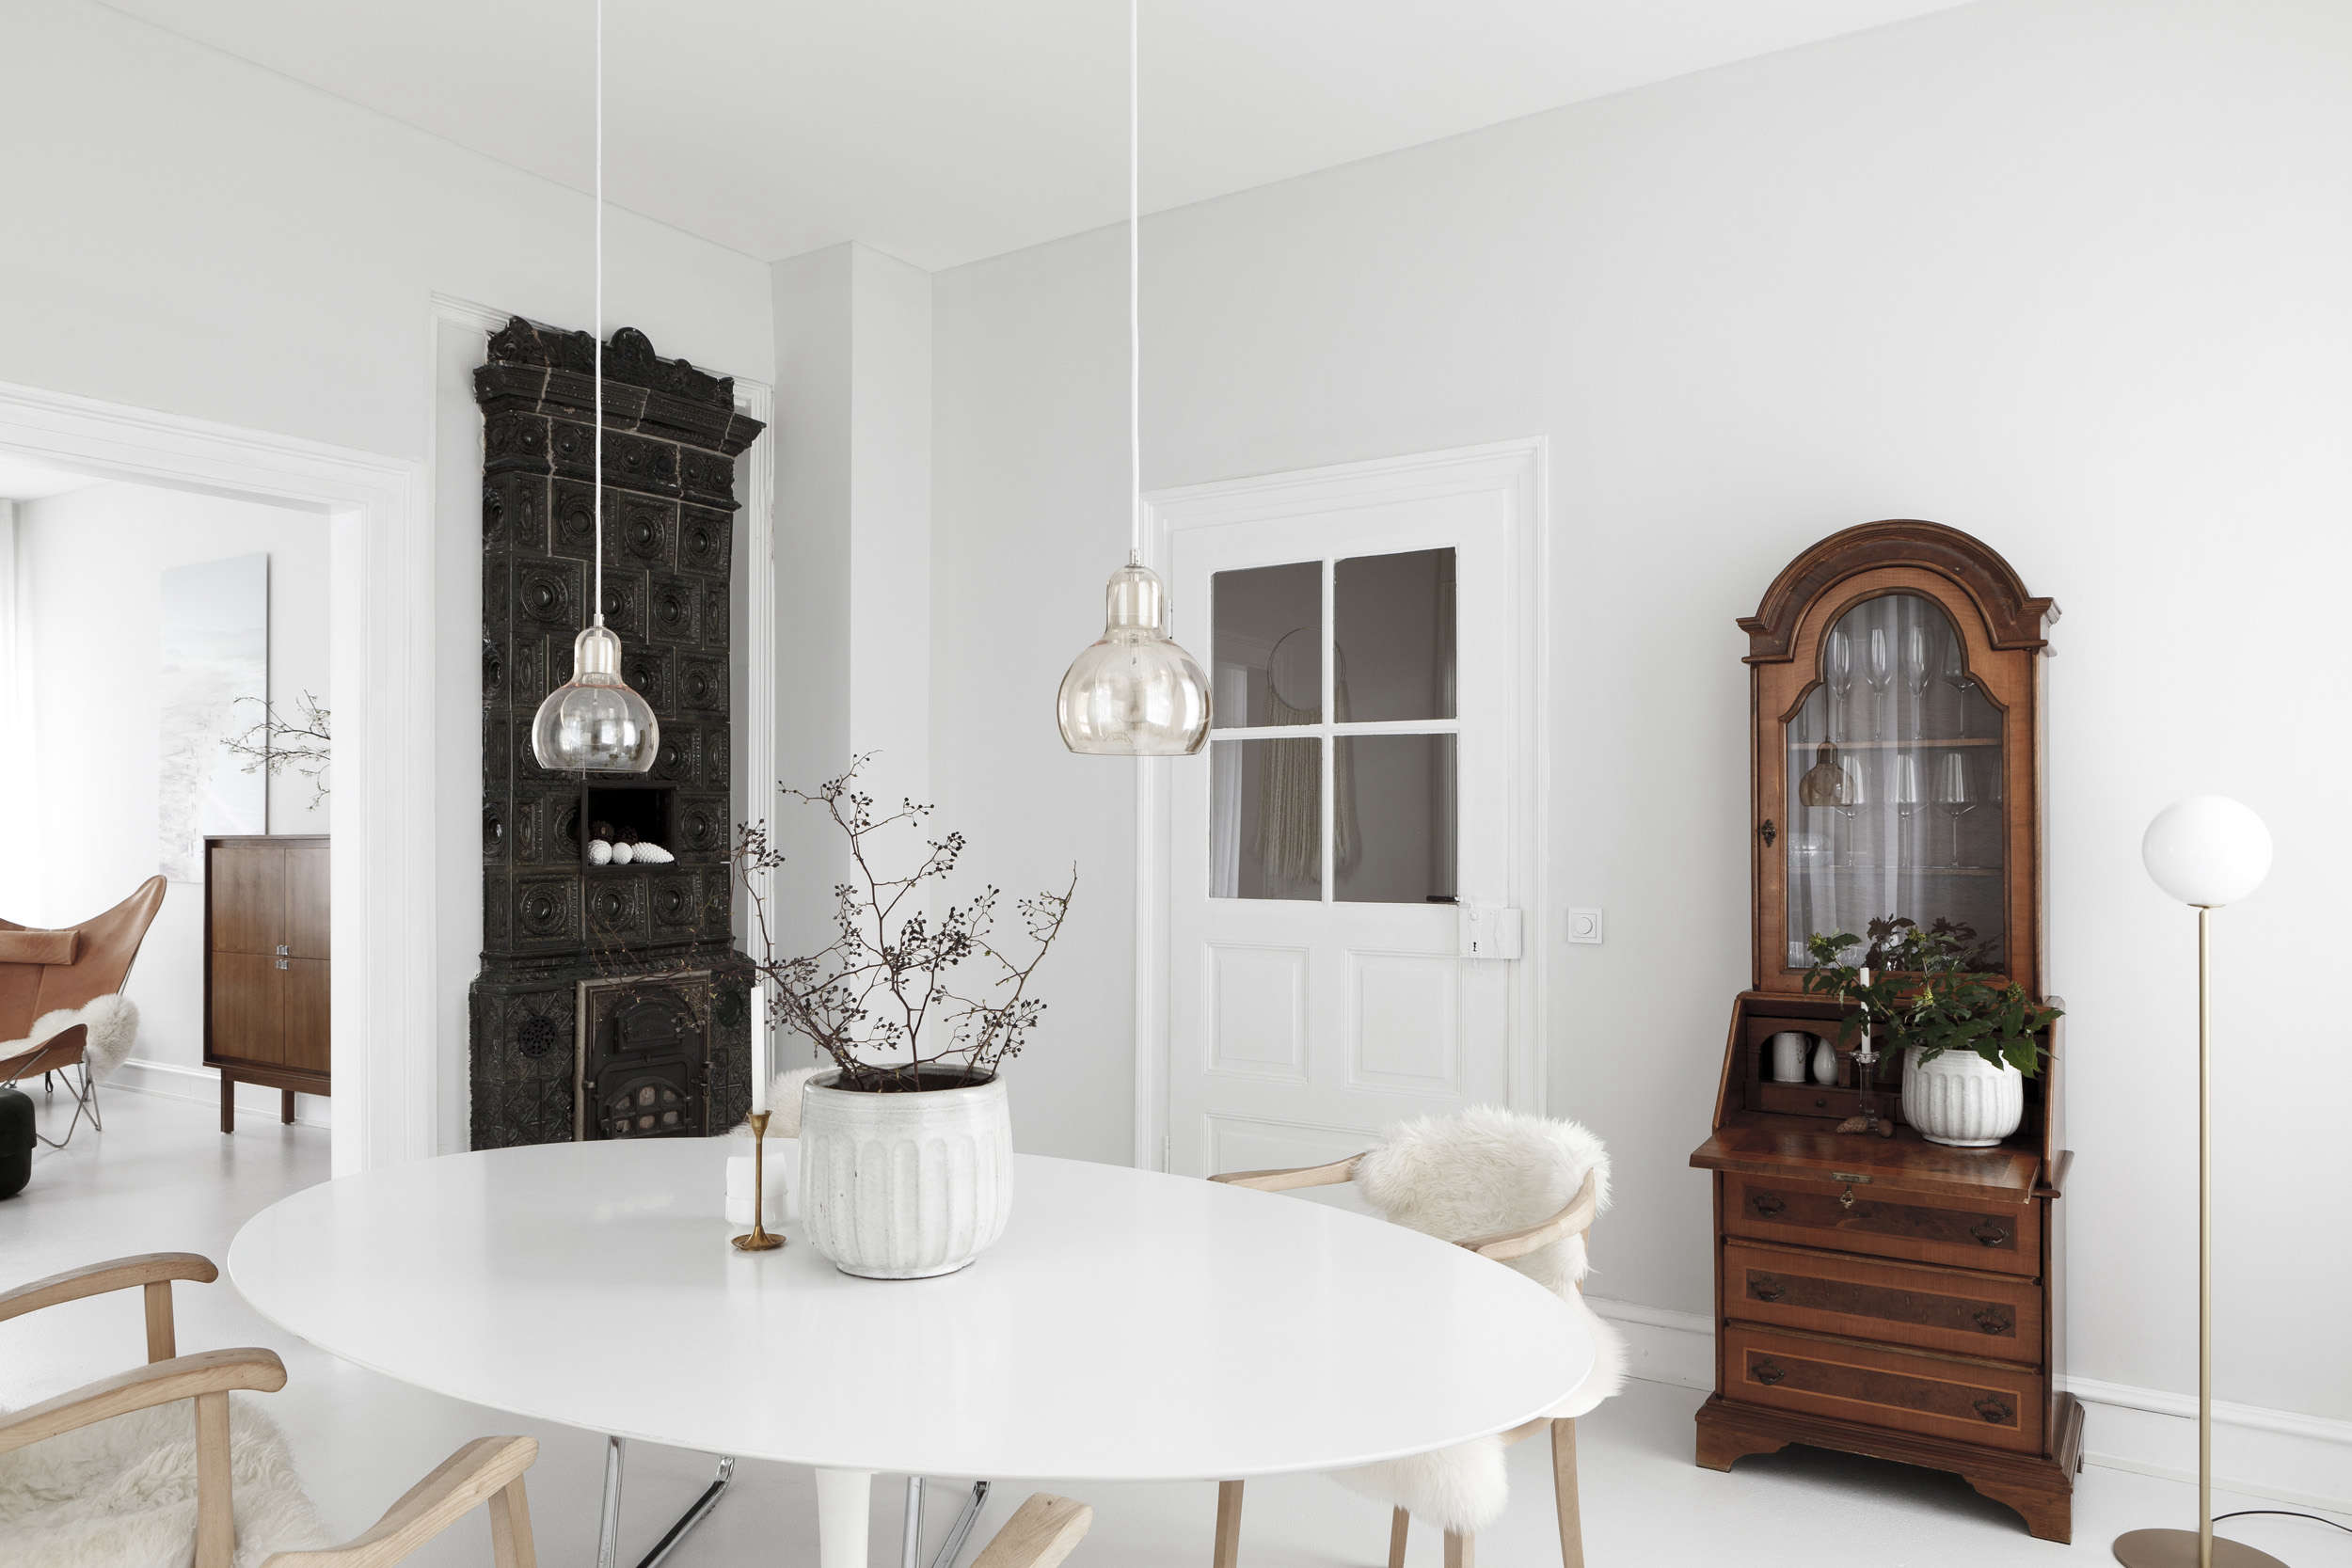 White dining room in a luxe-minimalist apartment remodel by Studio Oink in Mainz, Germany | Remodelista